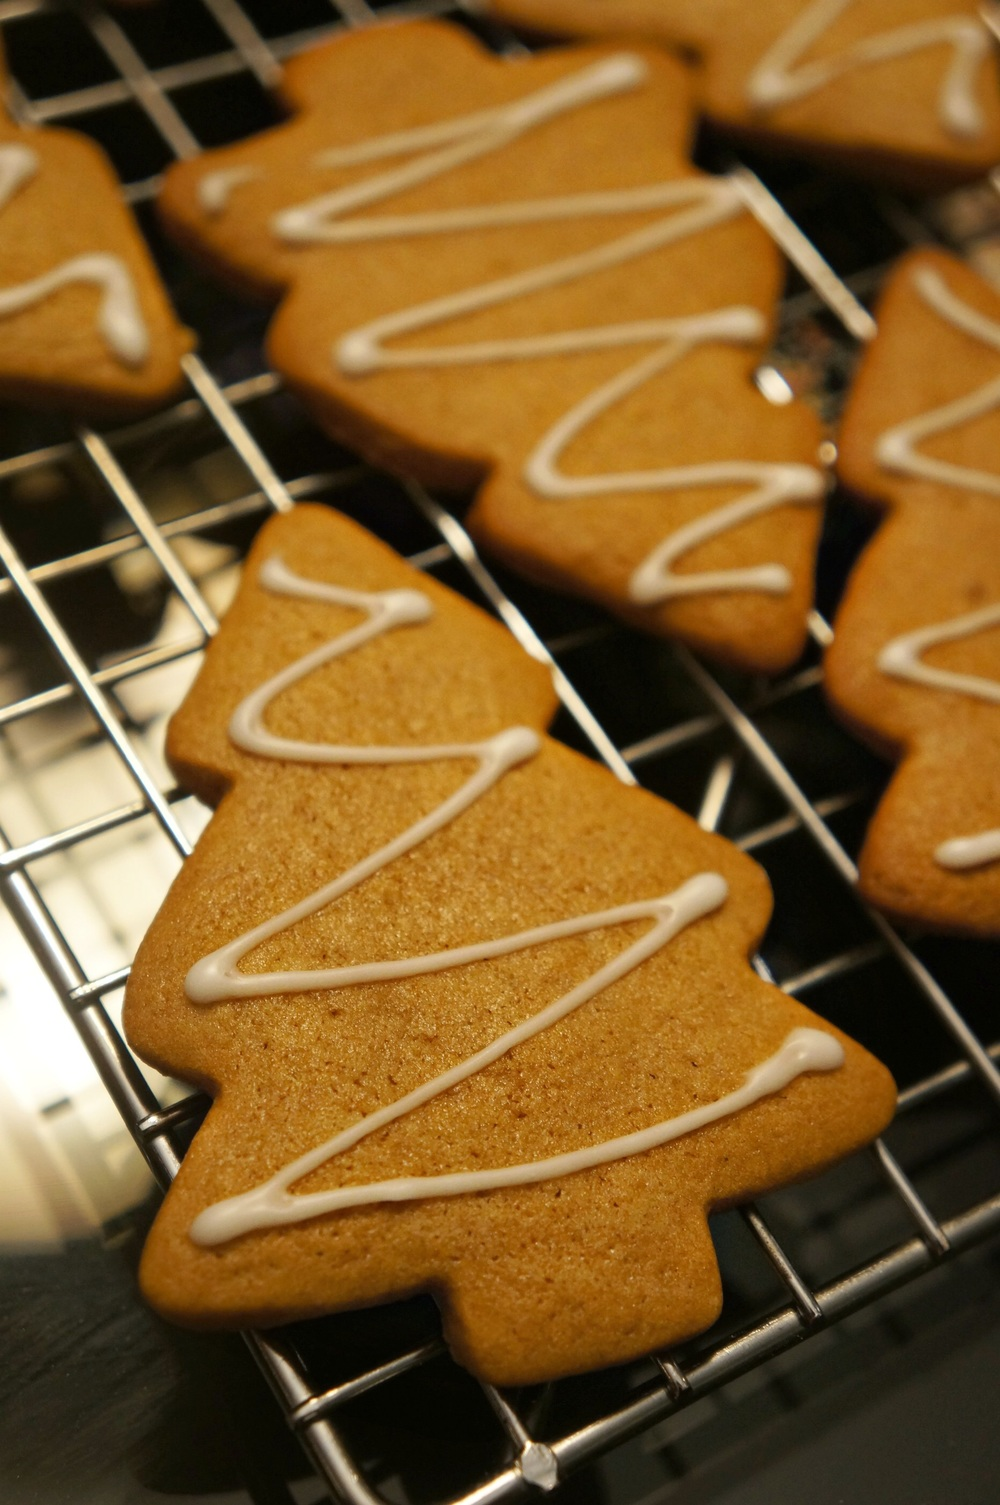 Lightly glazed Gingerbread Cookies- yum! Christmas staple